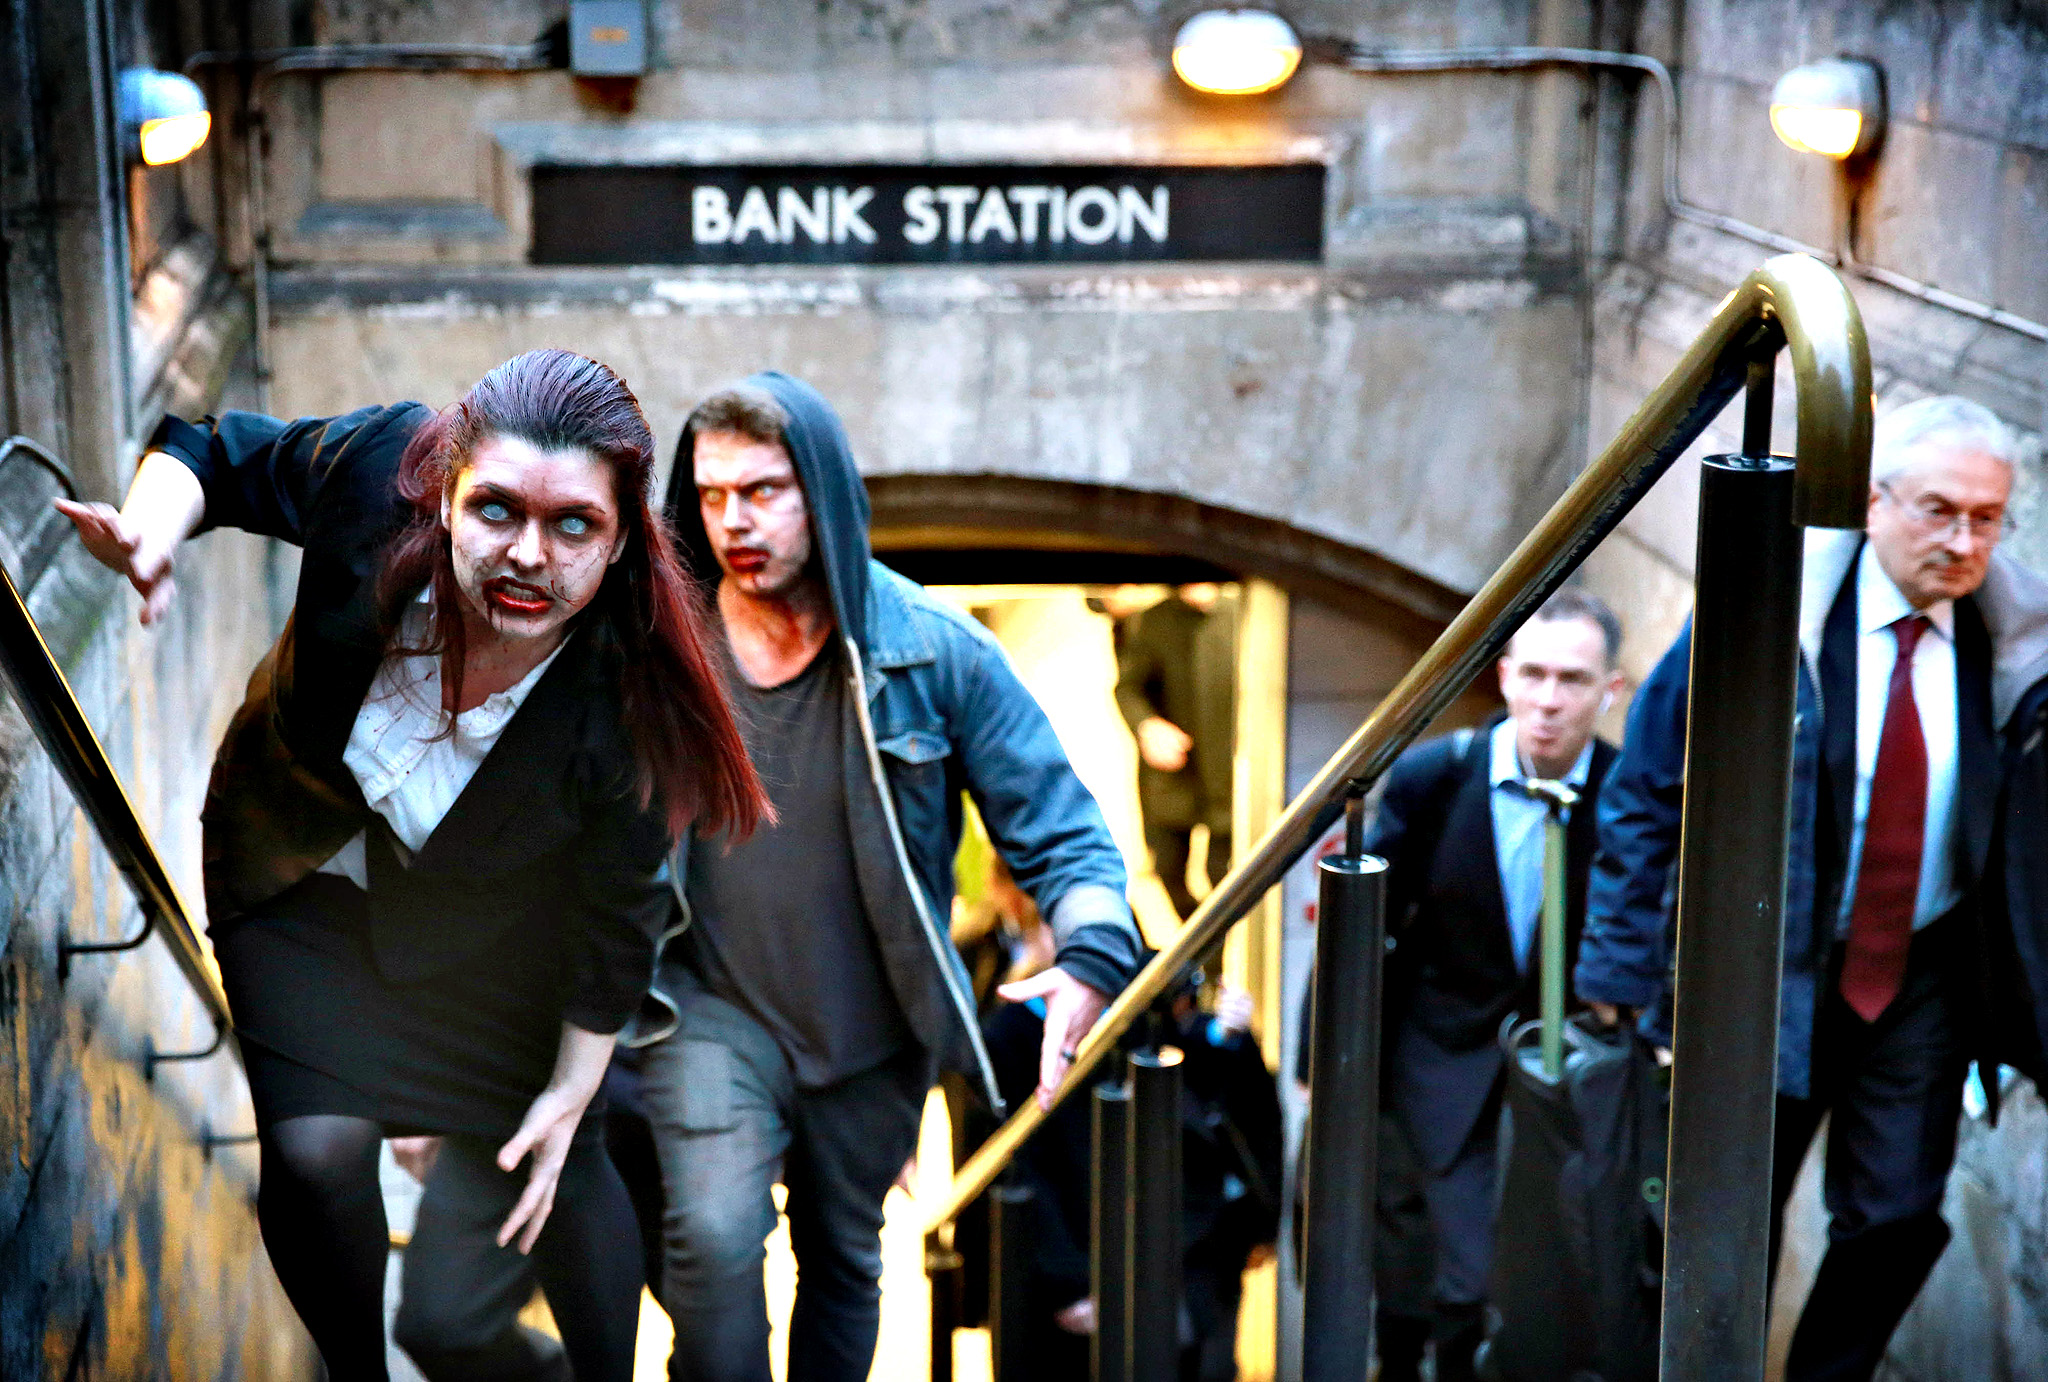 Actors dressed as zombies exit Bank Station in London as peer-to-peer lender RateSetter highlights the issue of 'zombie' savings accounts with  lifeless returns . PRESS ASSOCIATION Photo. Picture date: Wednesday January 15, 2014. The independent study commissioned by RateSetter found that 79% of Britons do not check their savings returns against inflation, with some falling as low as 0.1% earning just  1 a year on savings of  1,000.